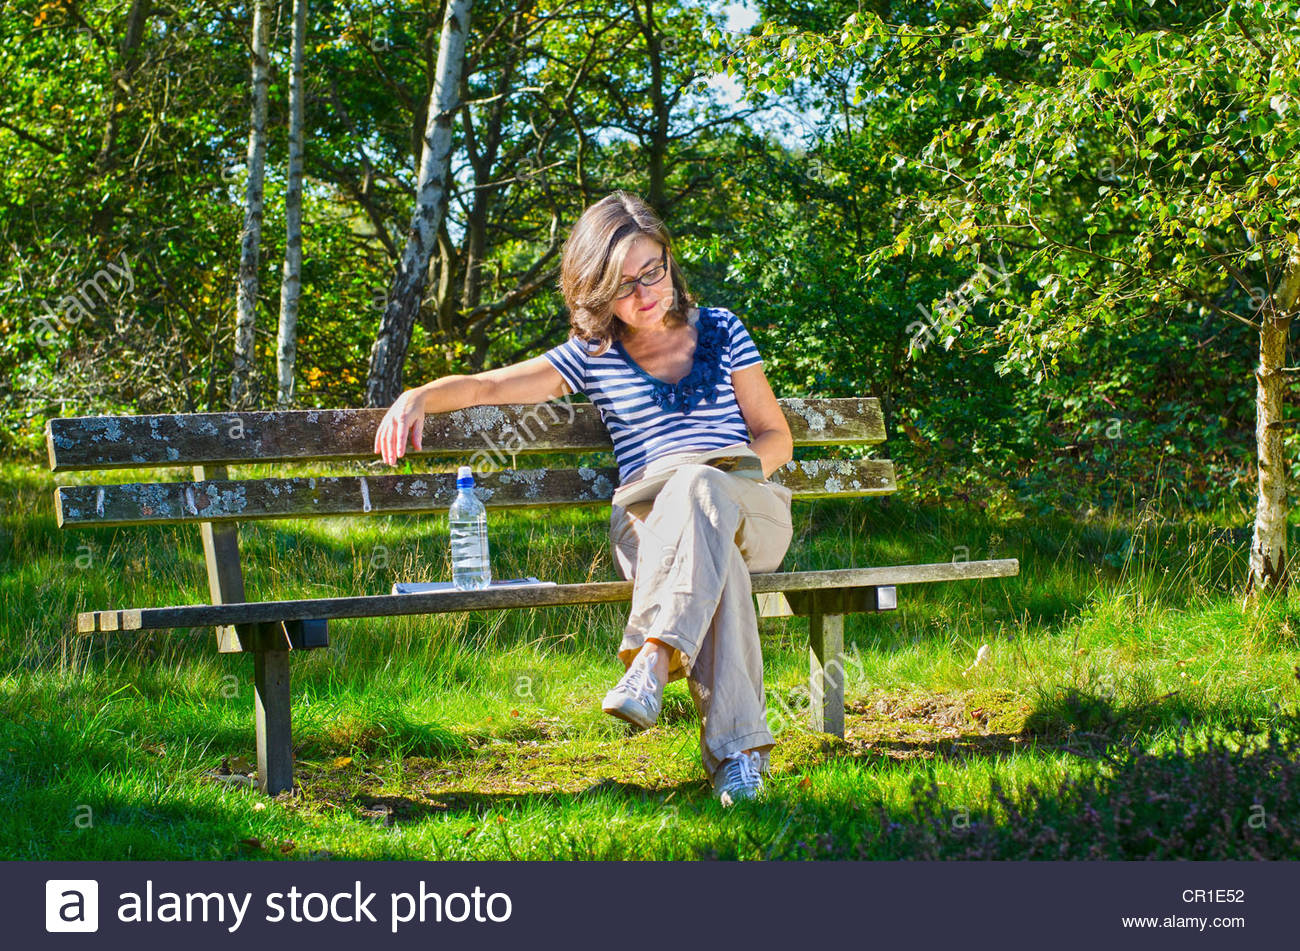 Older woman reading on park bench - Stock Image